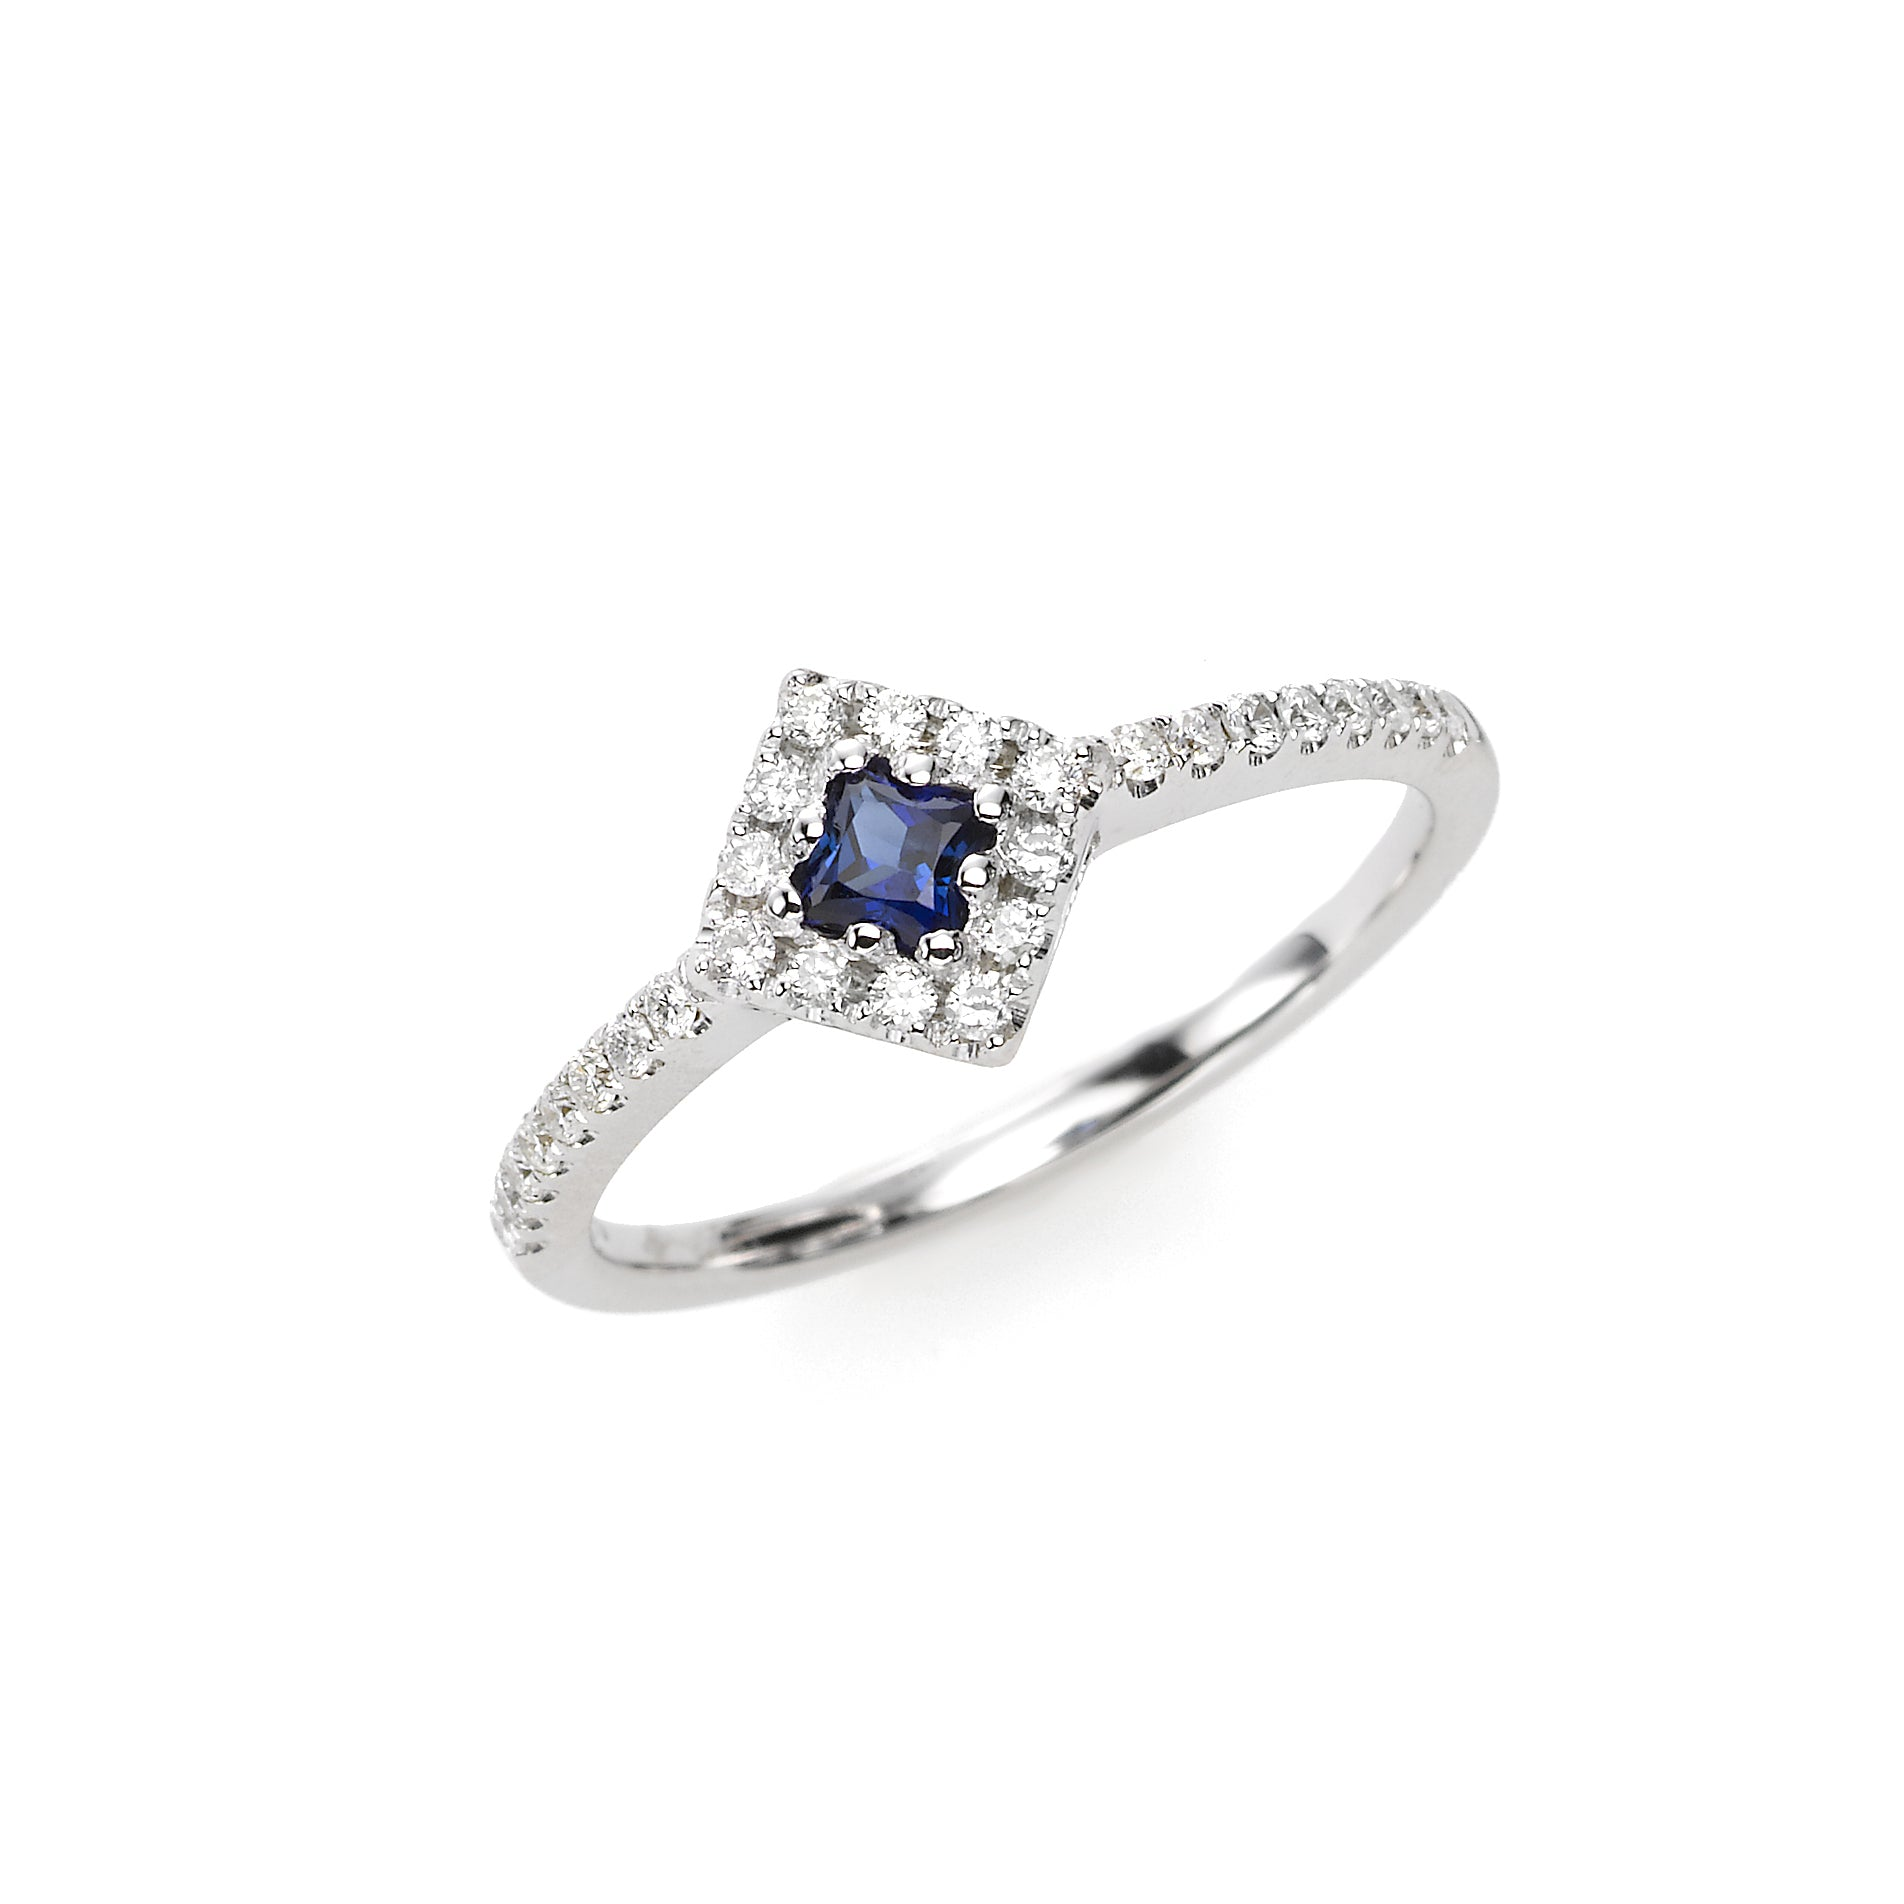 Square Shaped Sapphire and Diamond Ring, 14K White Gold